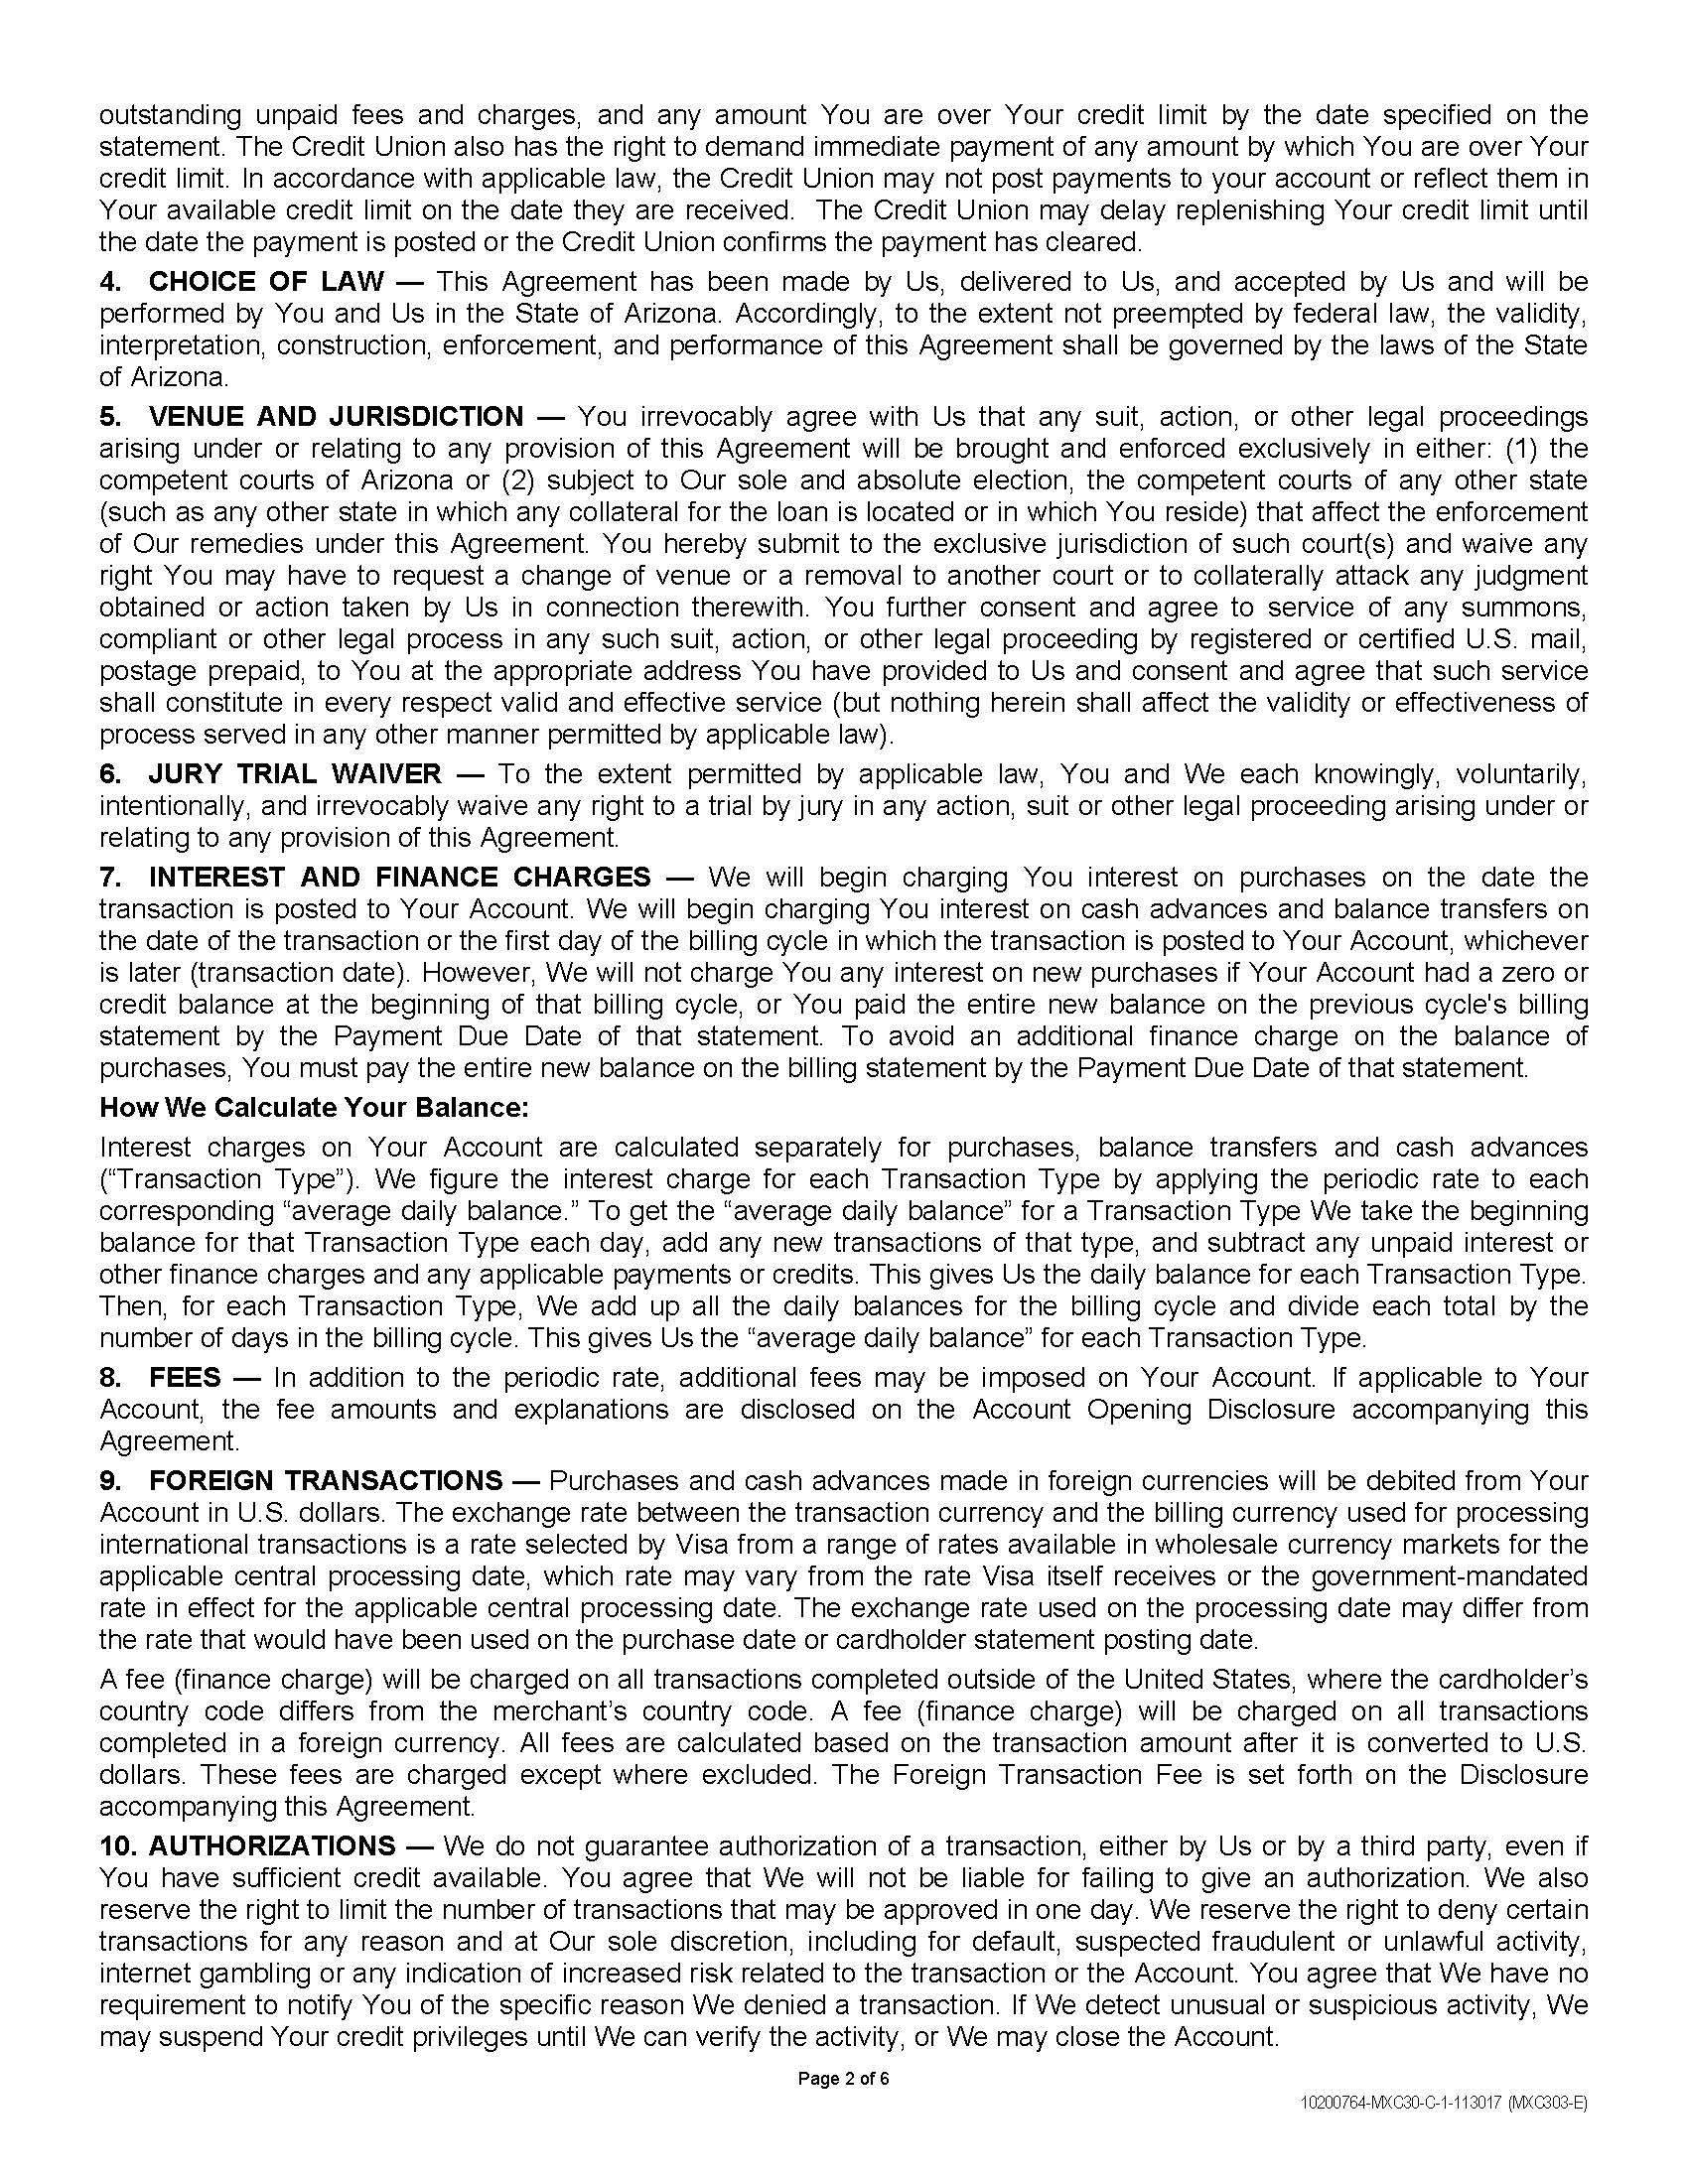 Consumer Credit Card Agreement And Disclosurepage2 Vantage West